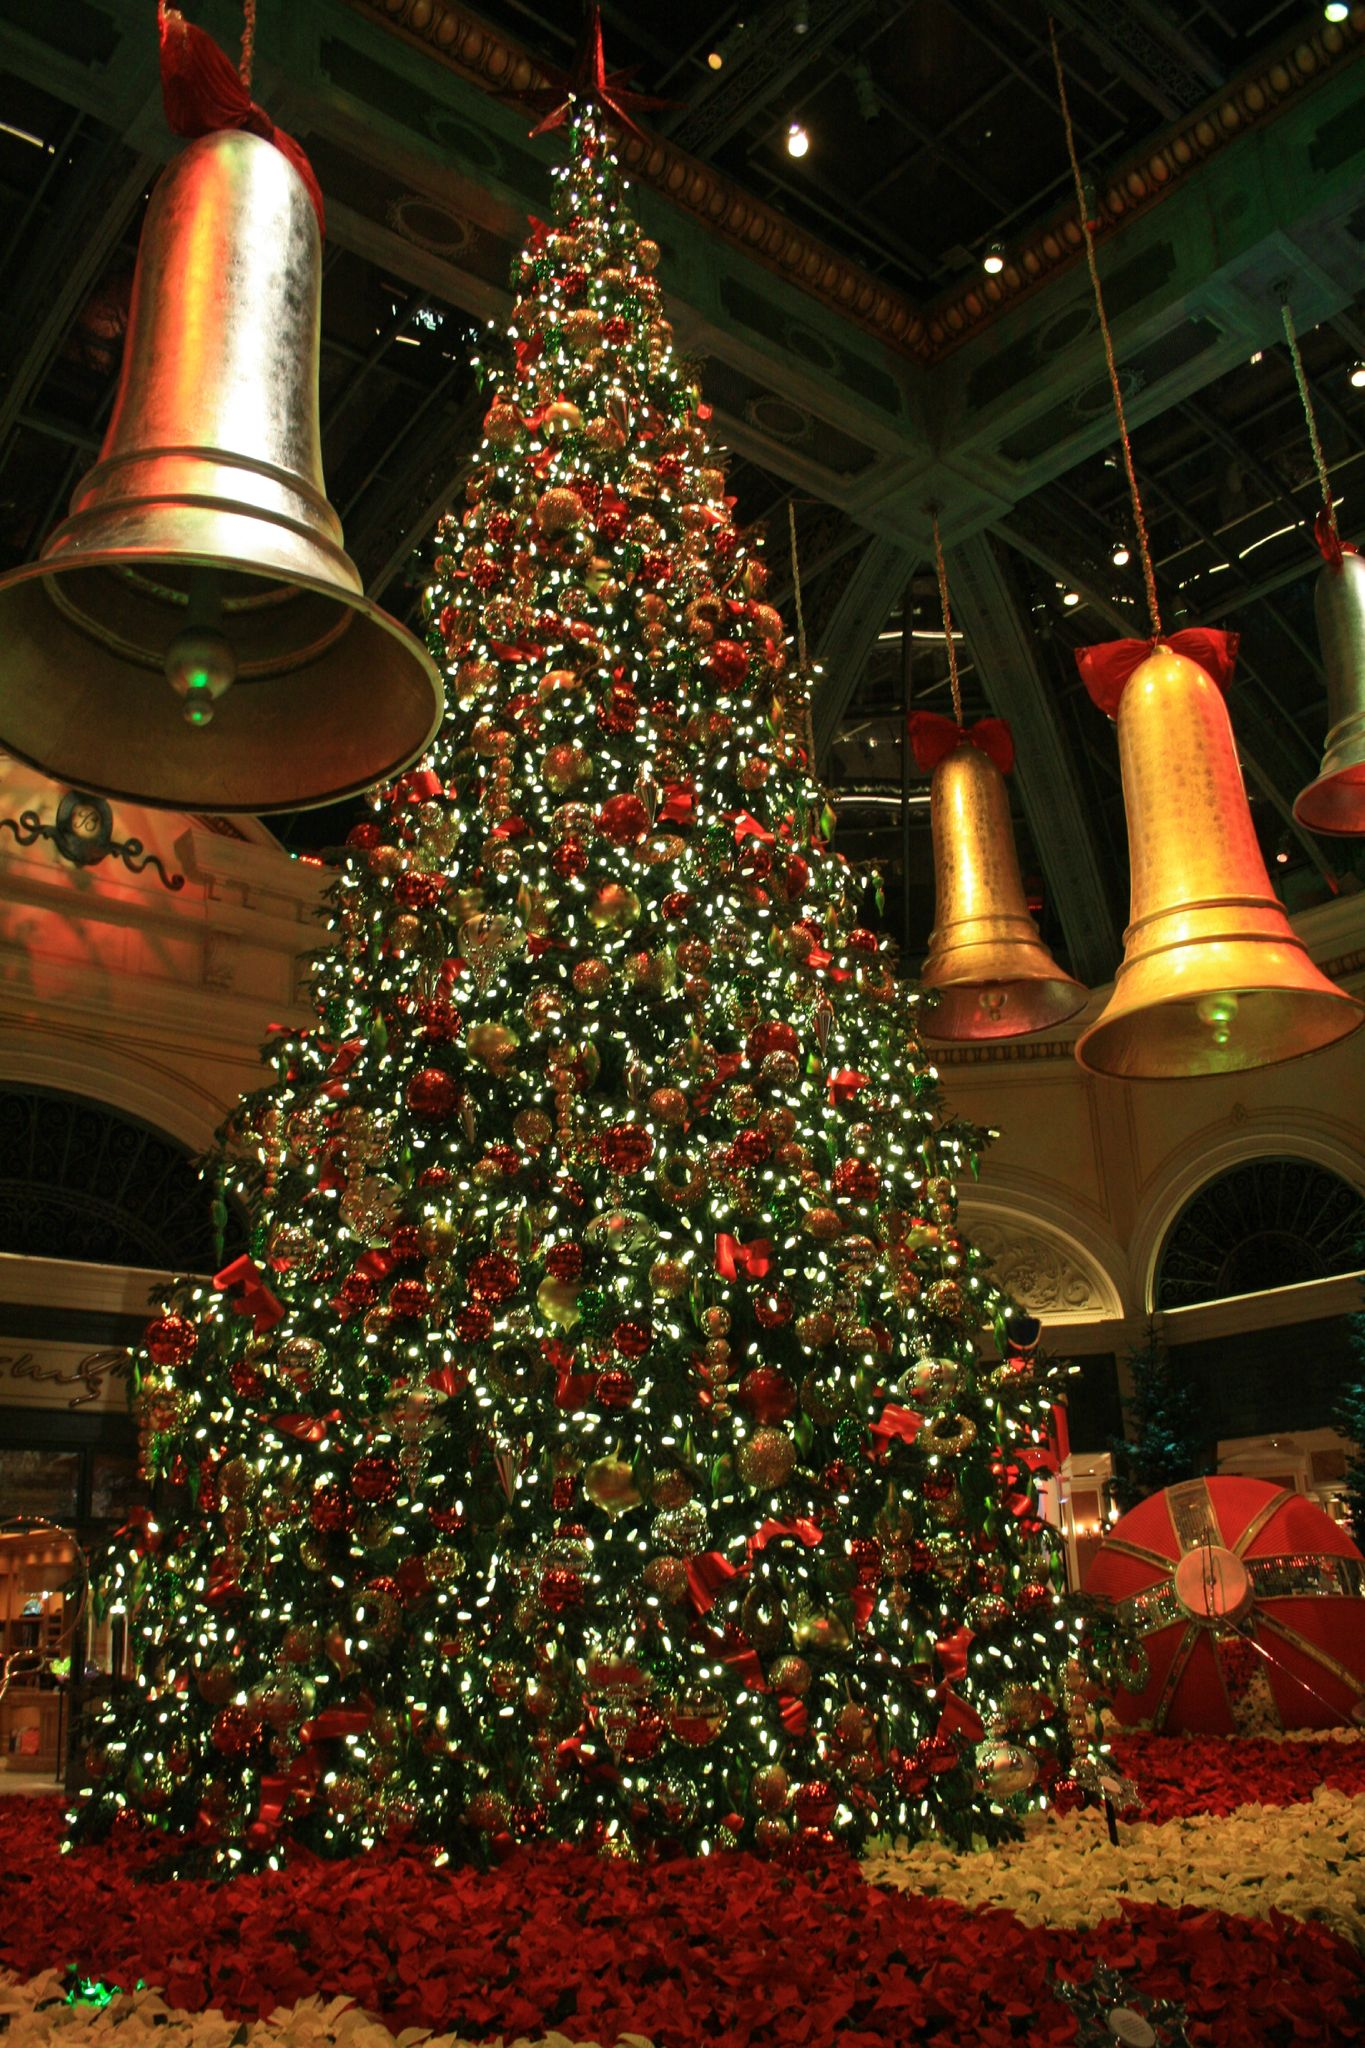 Decoration de noel au bellagio hotel casino l escale - Site americain decoration noel ...